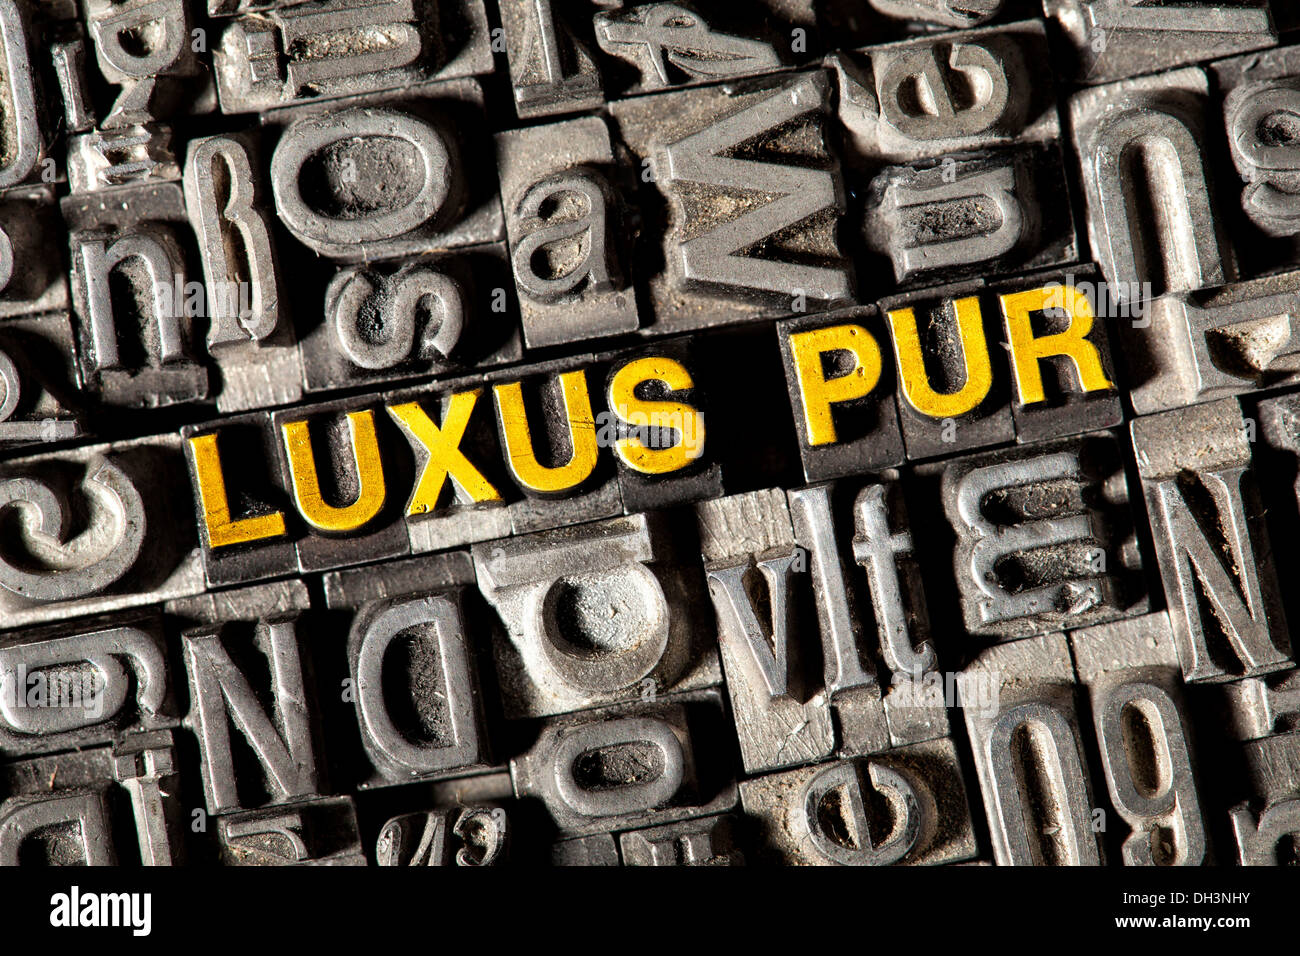 Old lead letters forming the word 'LUXUS PUR', German for 'sheer luxury' - Stock Image